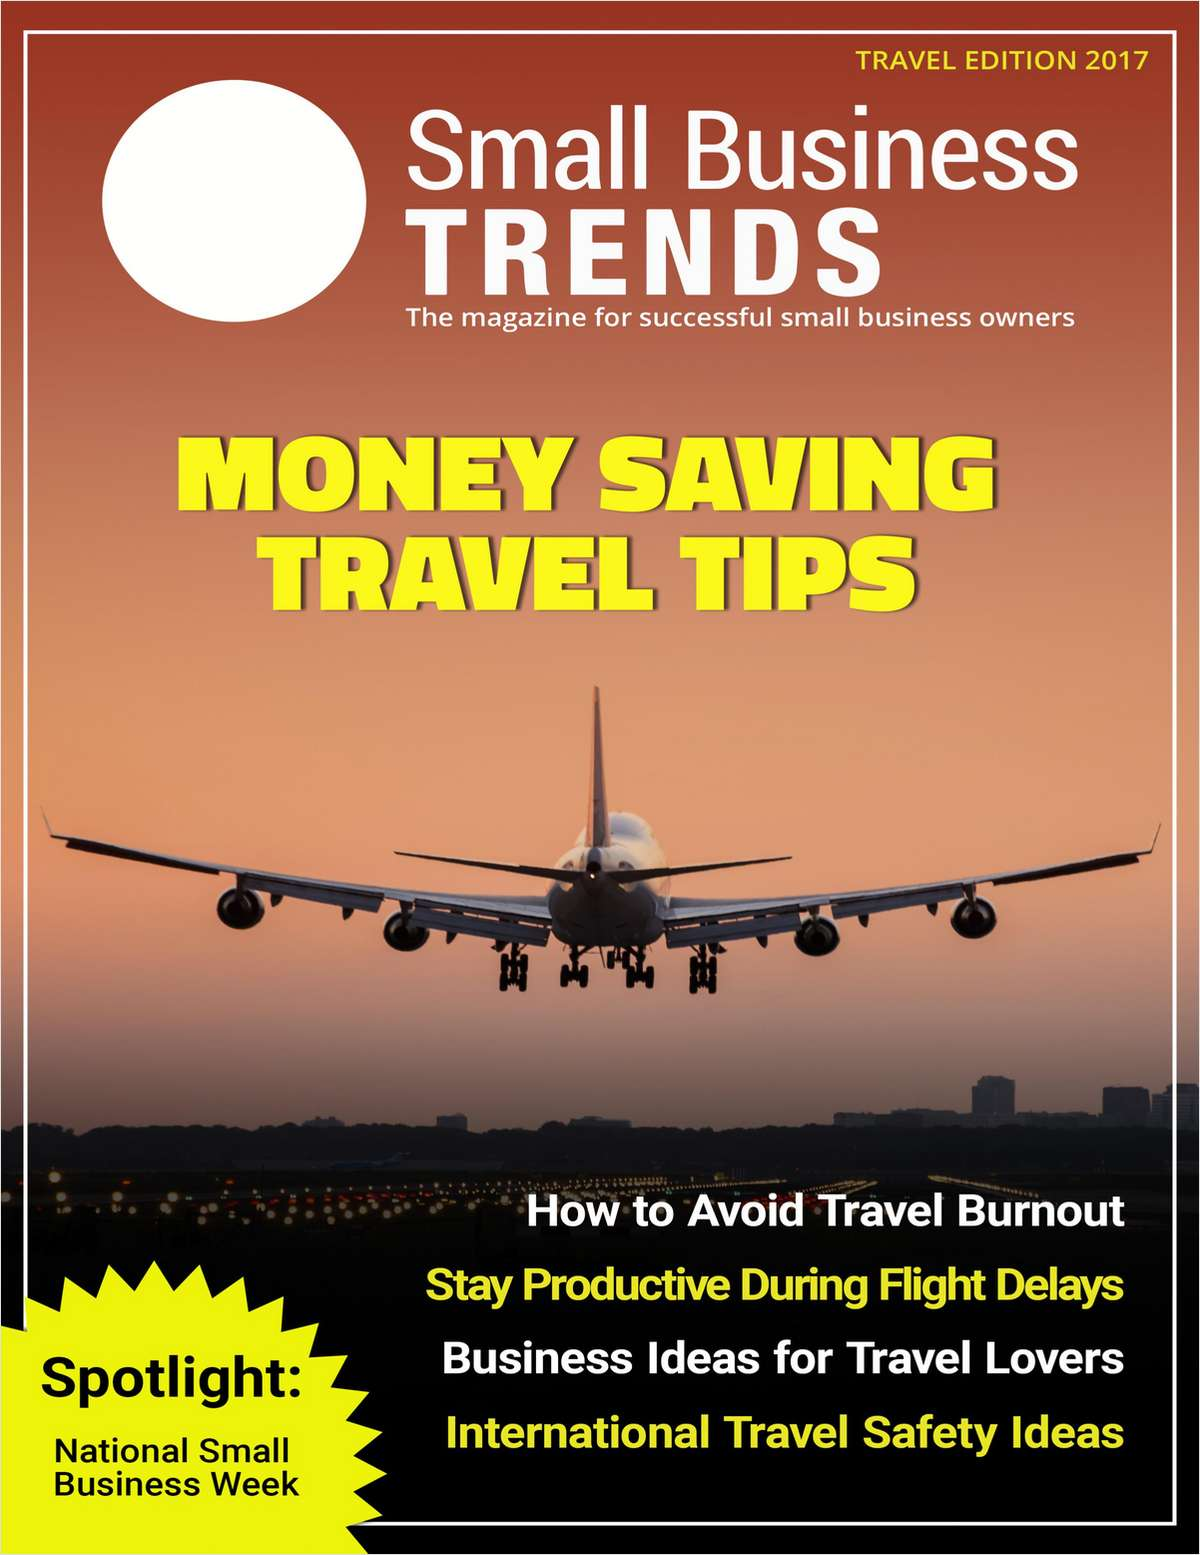 Small Business Trends Magazine -- Travel Edition 2017